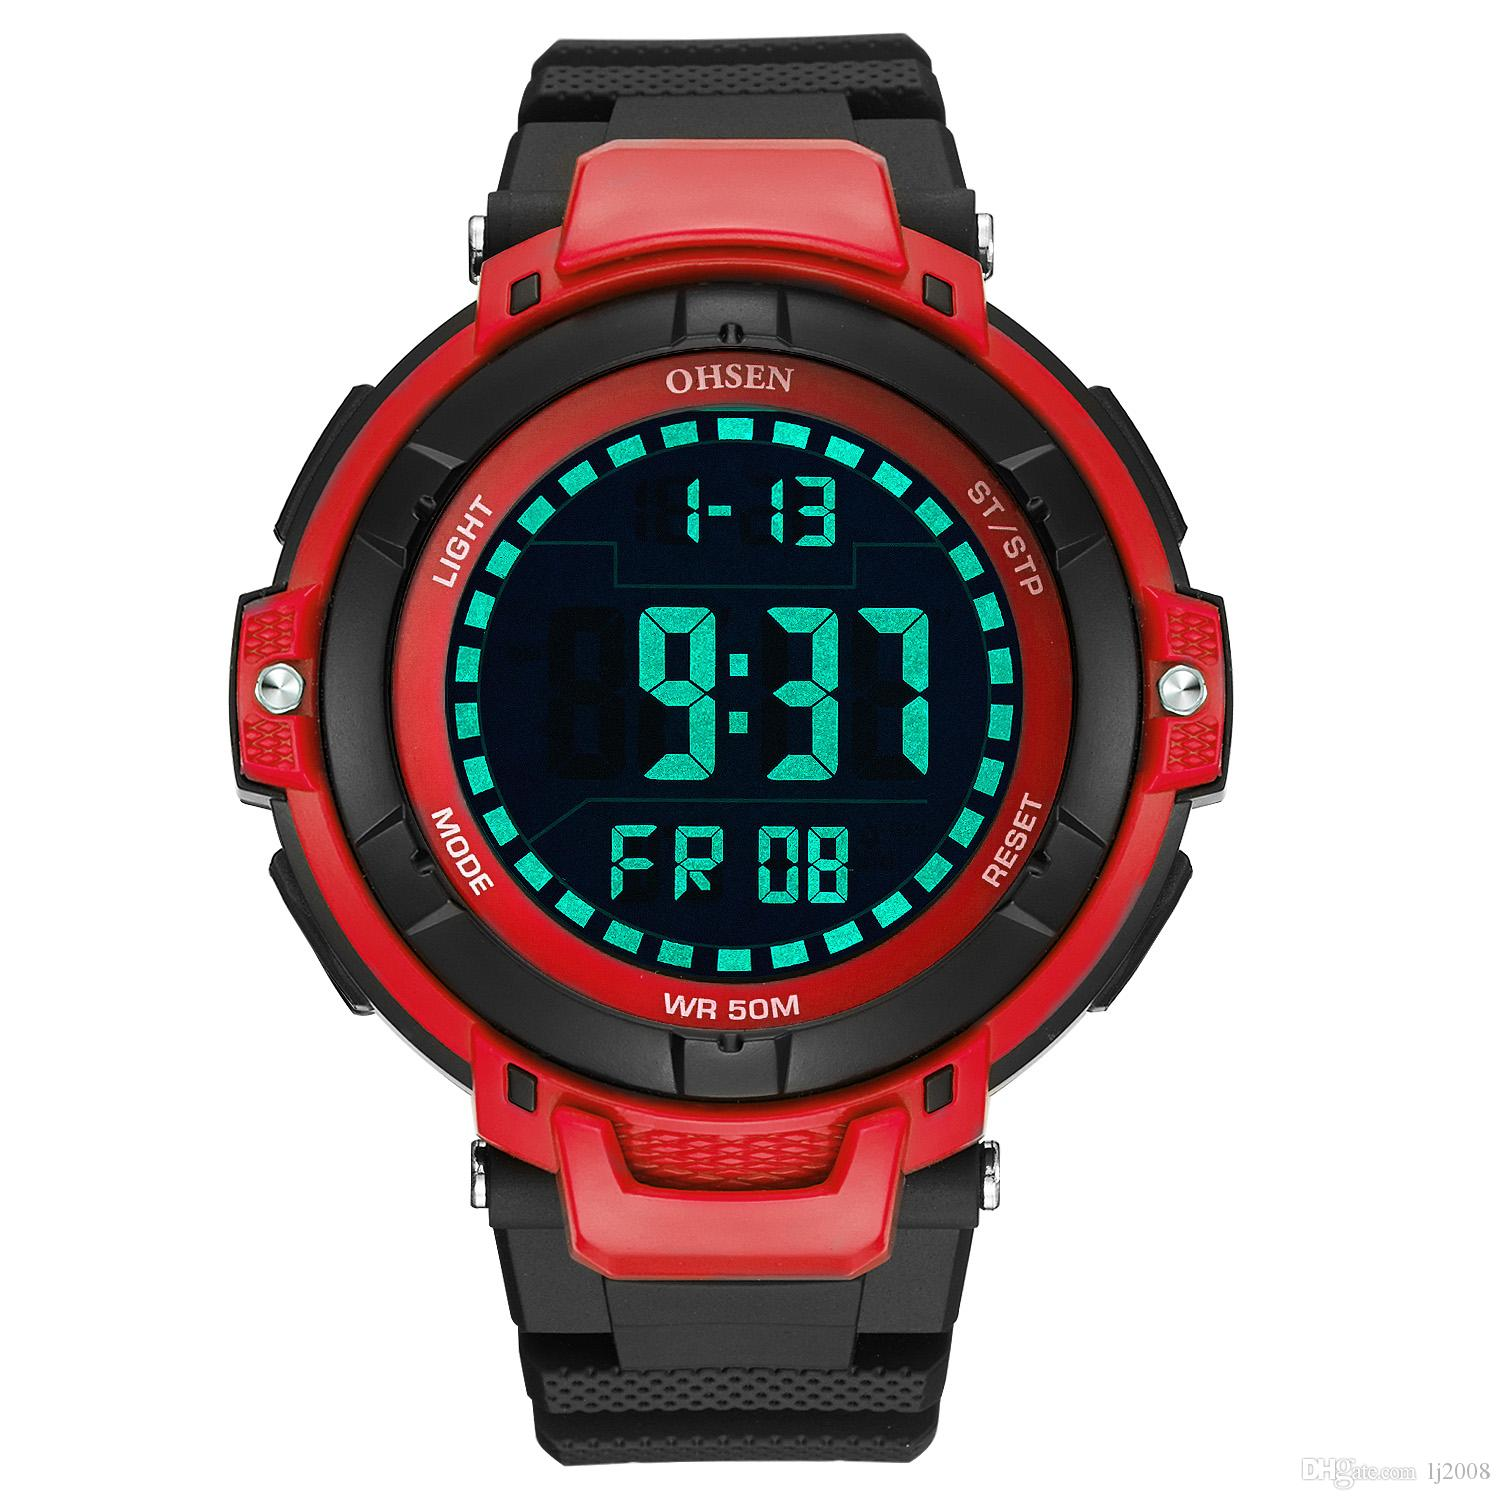 0457fe1b71f Fashion Brand OHSEN Digital Watch Men Relogios Running Sport Watch Men  Rubber Band LED Water Resistant Electronic Wrsit Watches